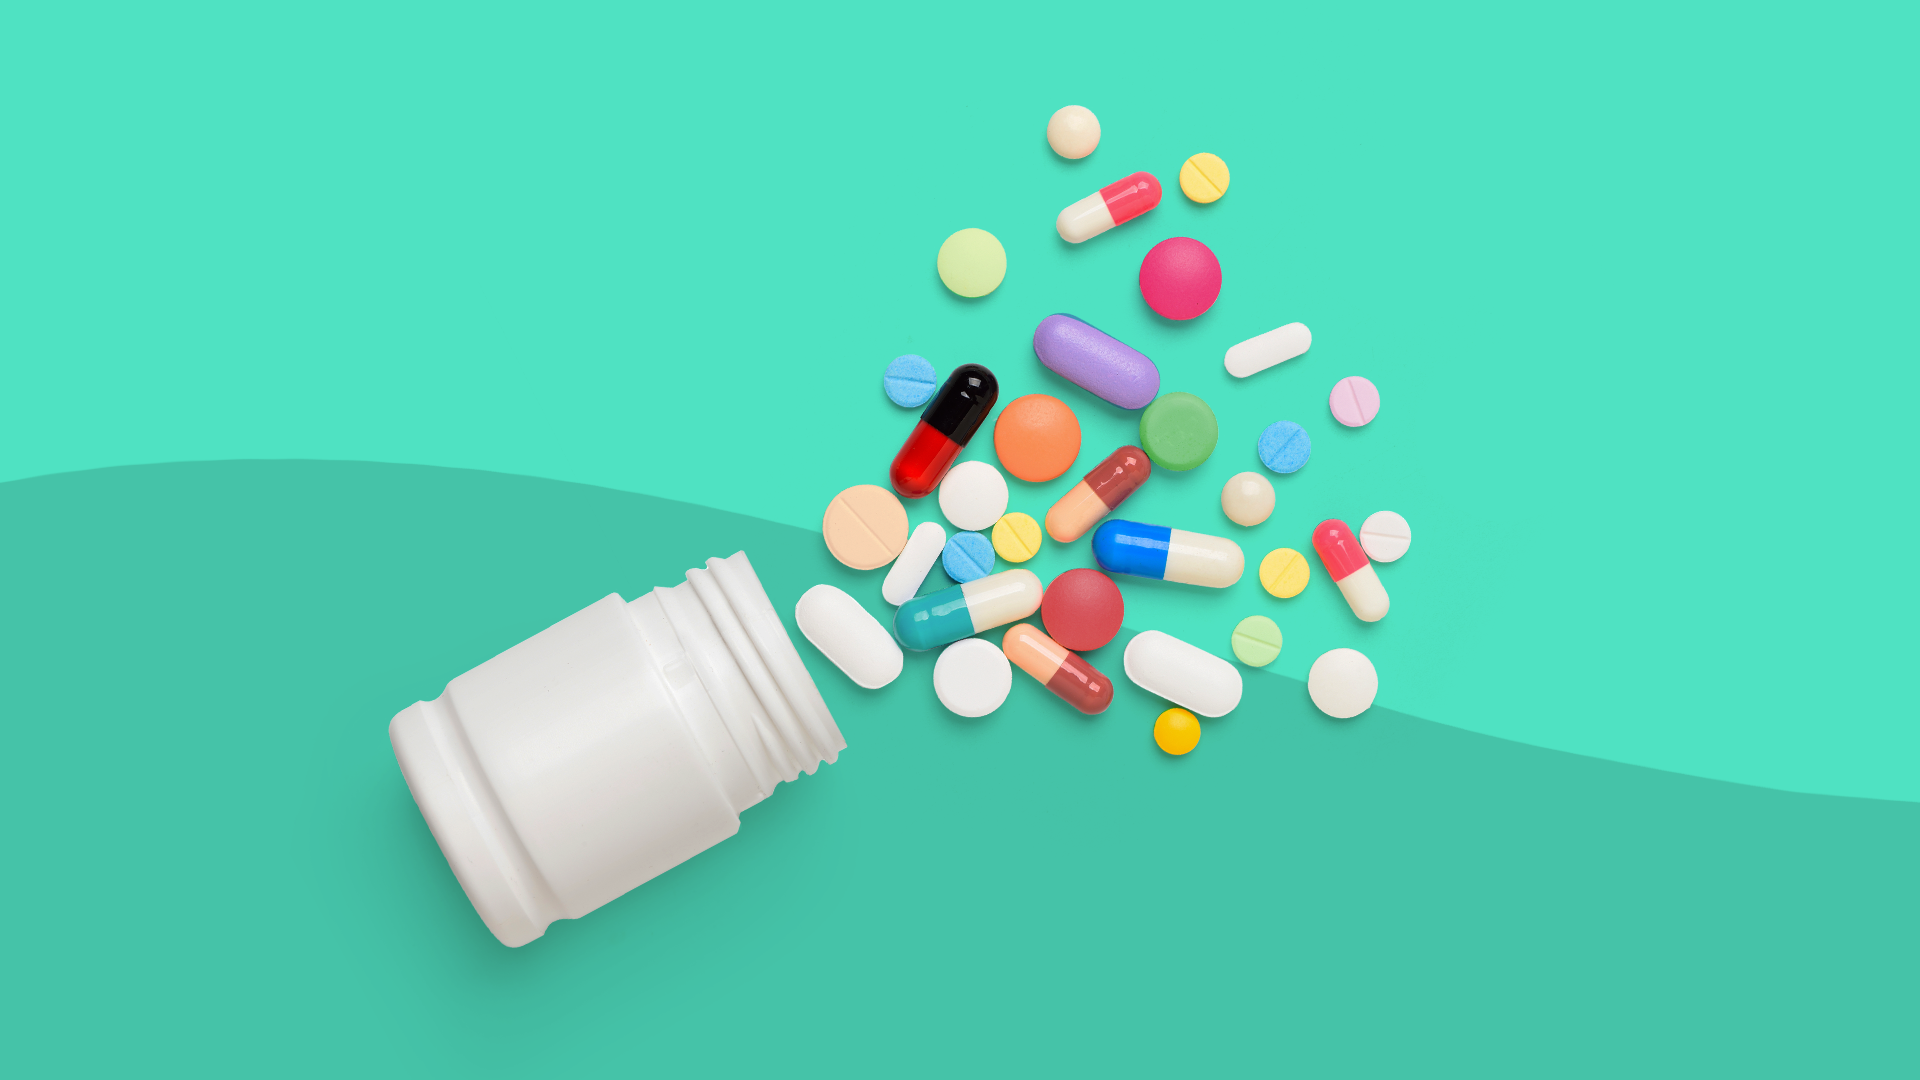 PDE5 inhibitors: Uses, common brands, and safety information